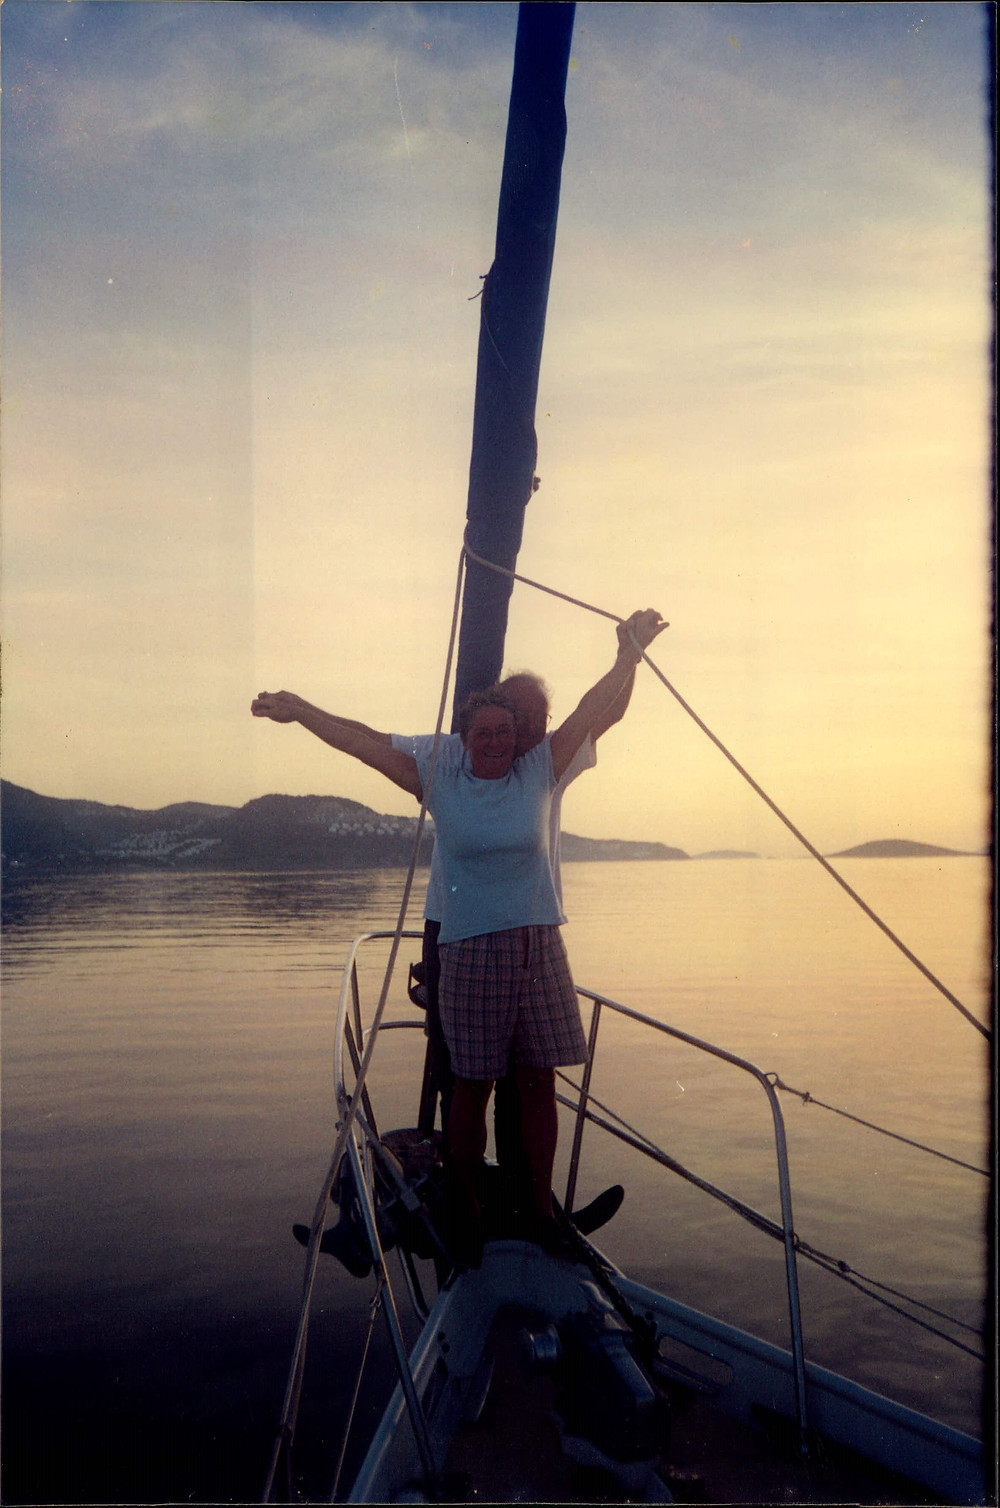 Mum and Dad on their yacht in the Aegean sea